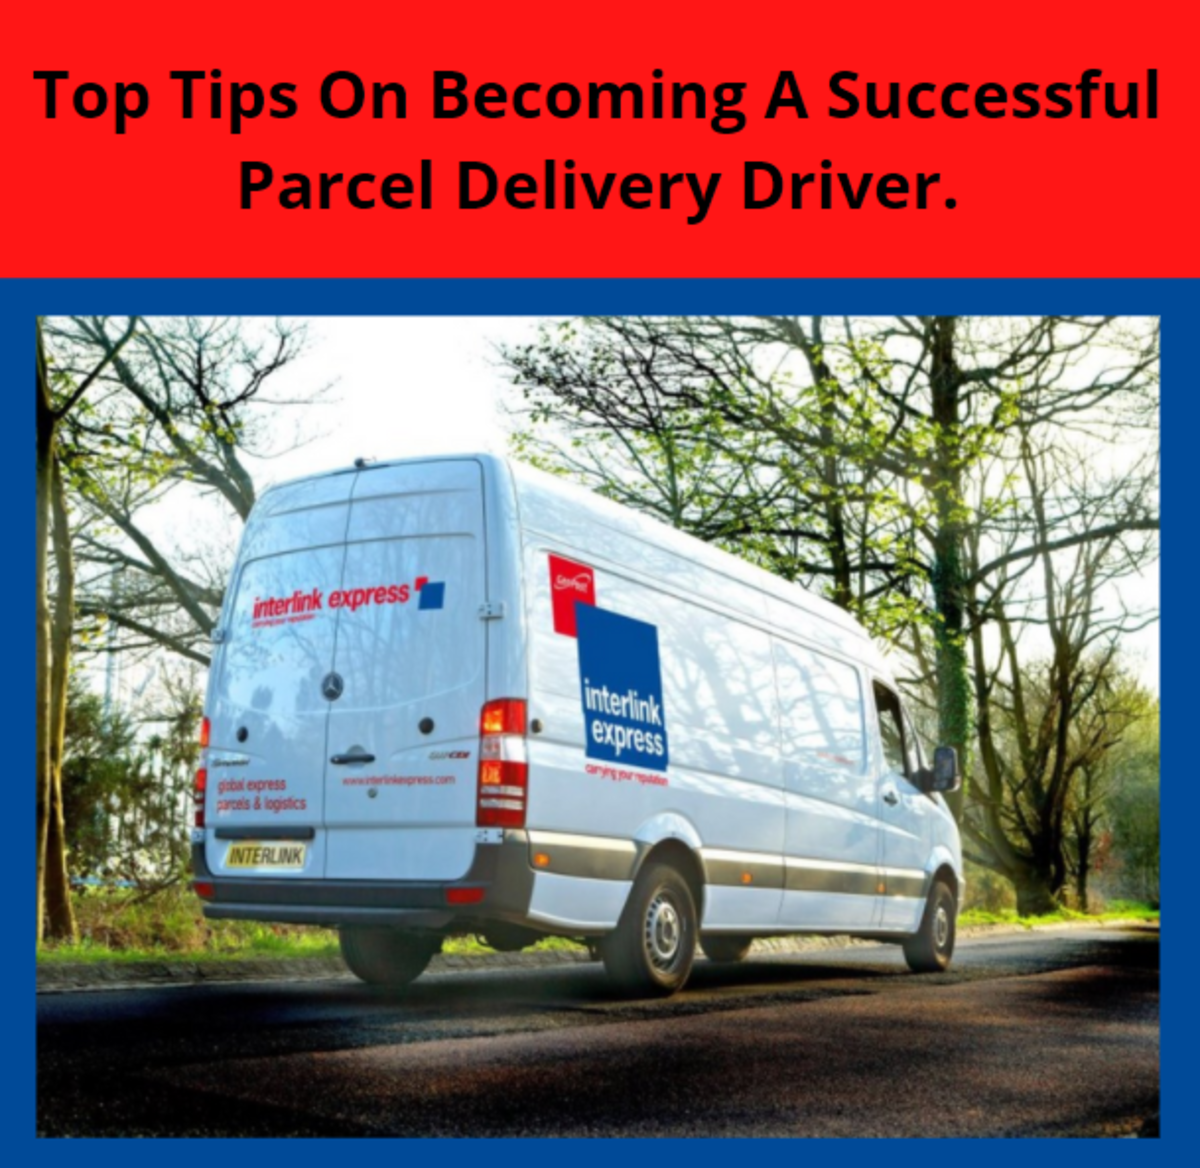 Top Tips on Becoming a Successful Parcel Delivery Driver.